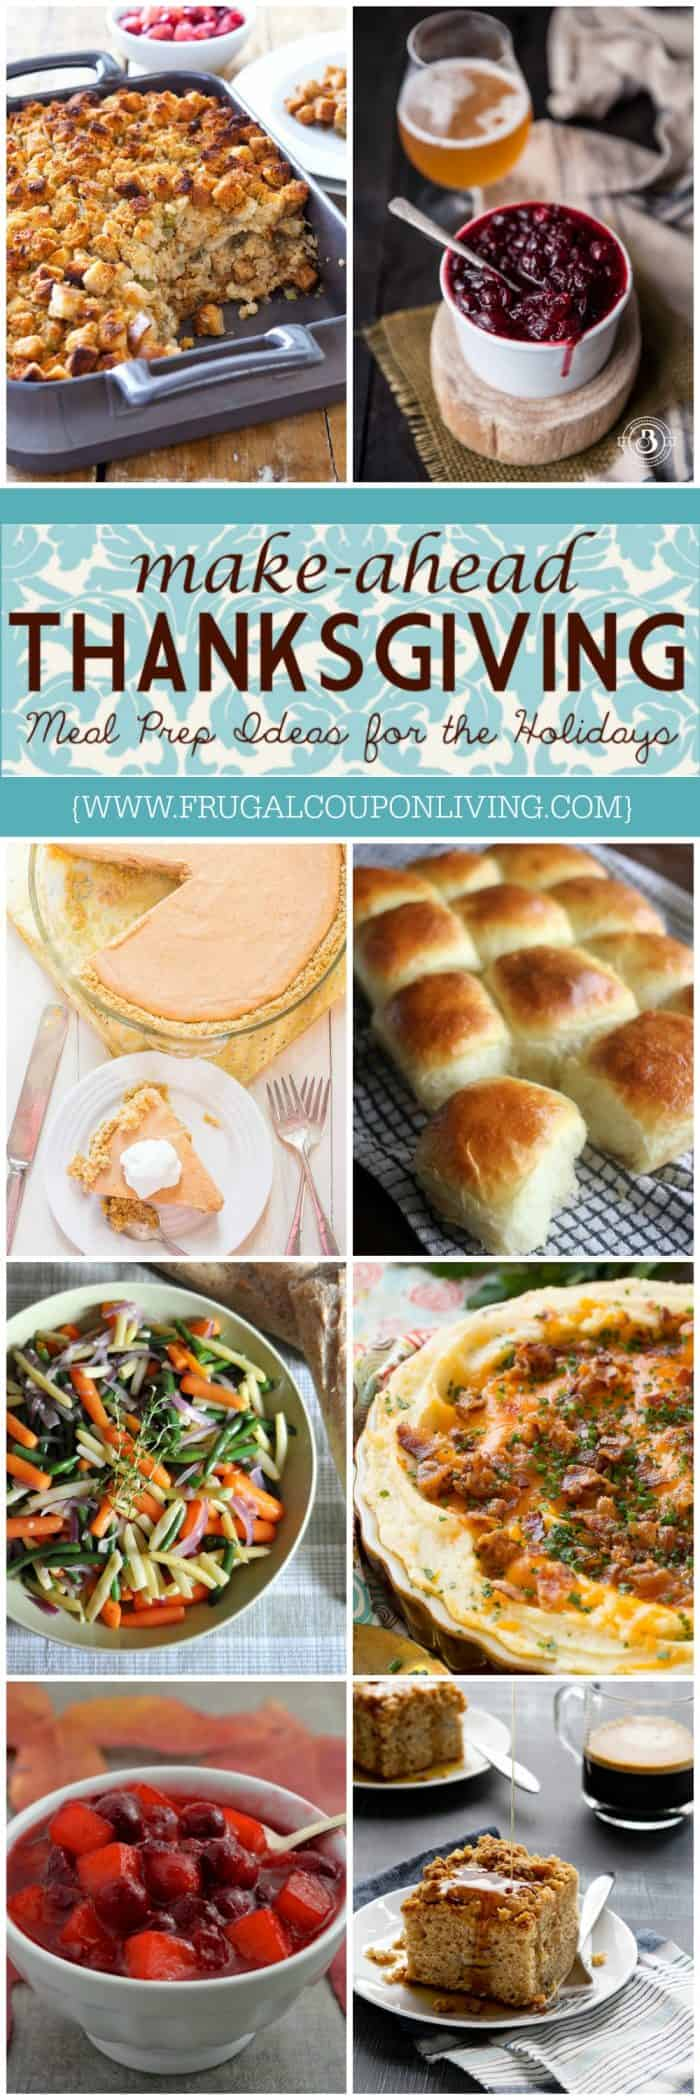 Make-Ahead-Thanksgiving-long-Frugal-Coupon-Living